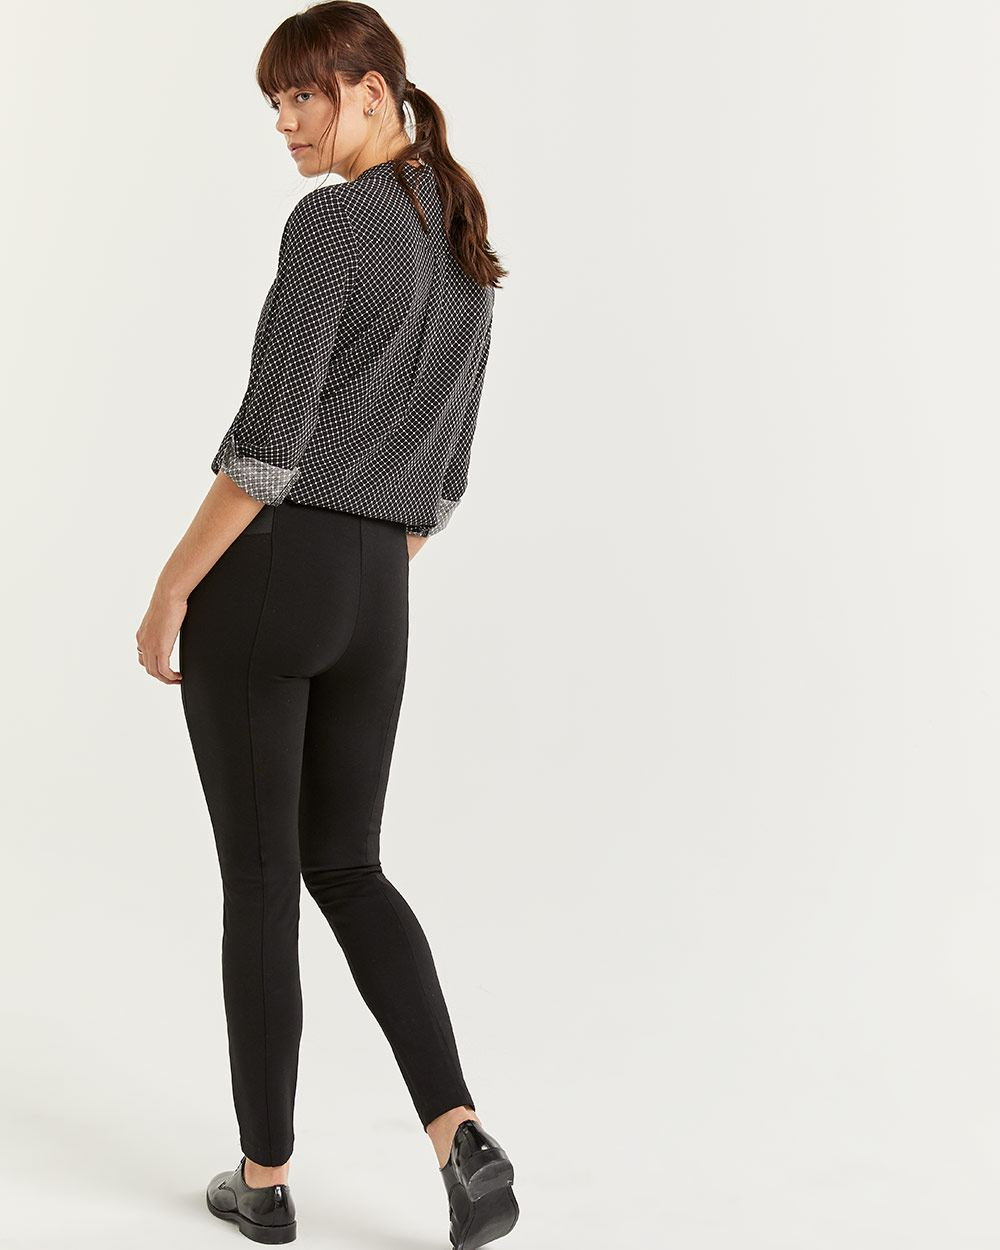 Shaping Leggings with Elastic Side Bands